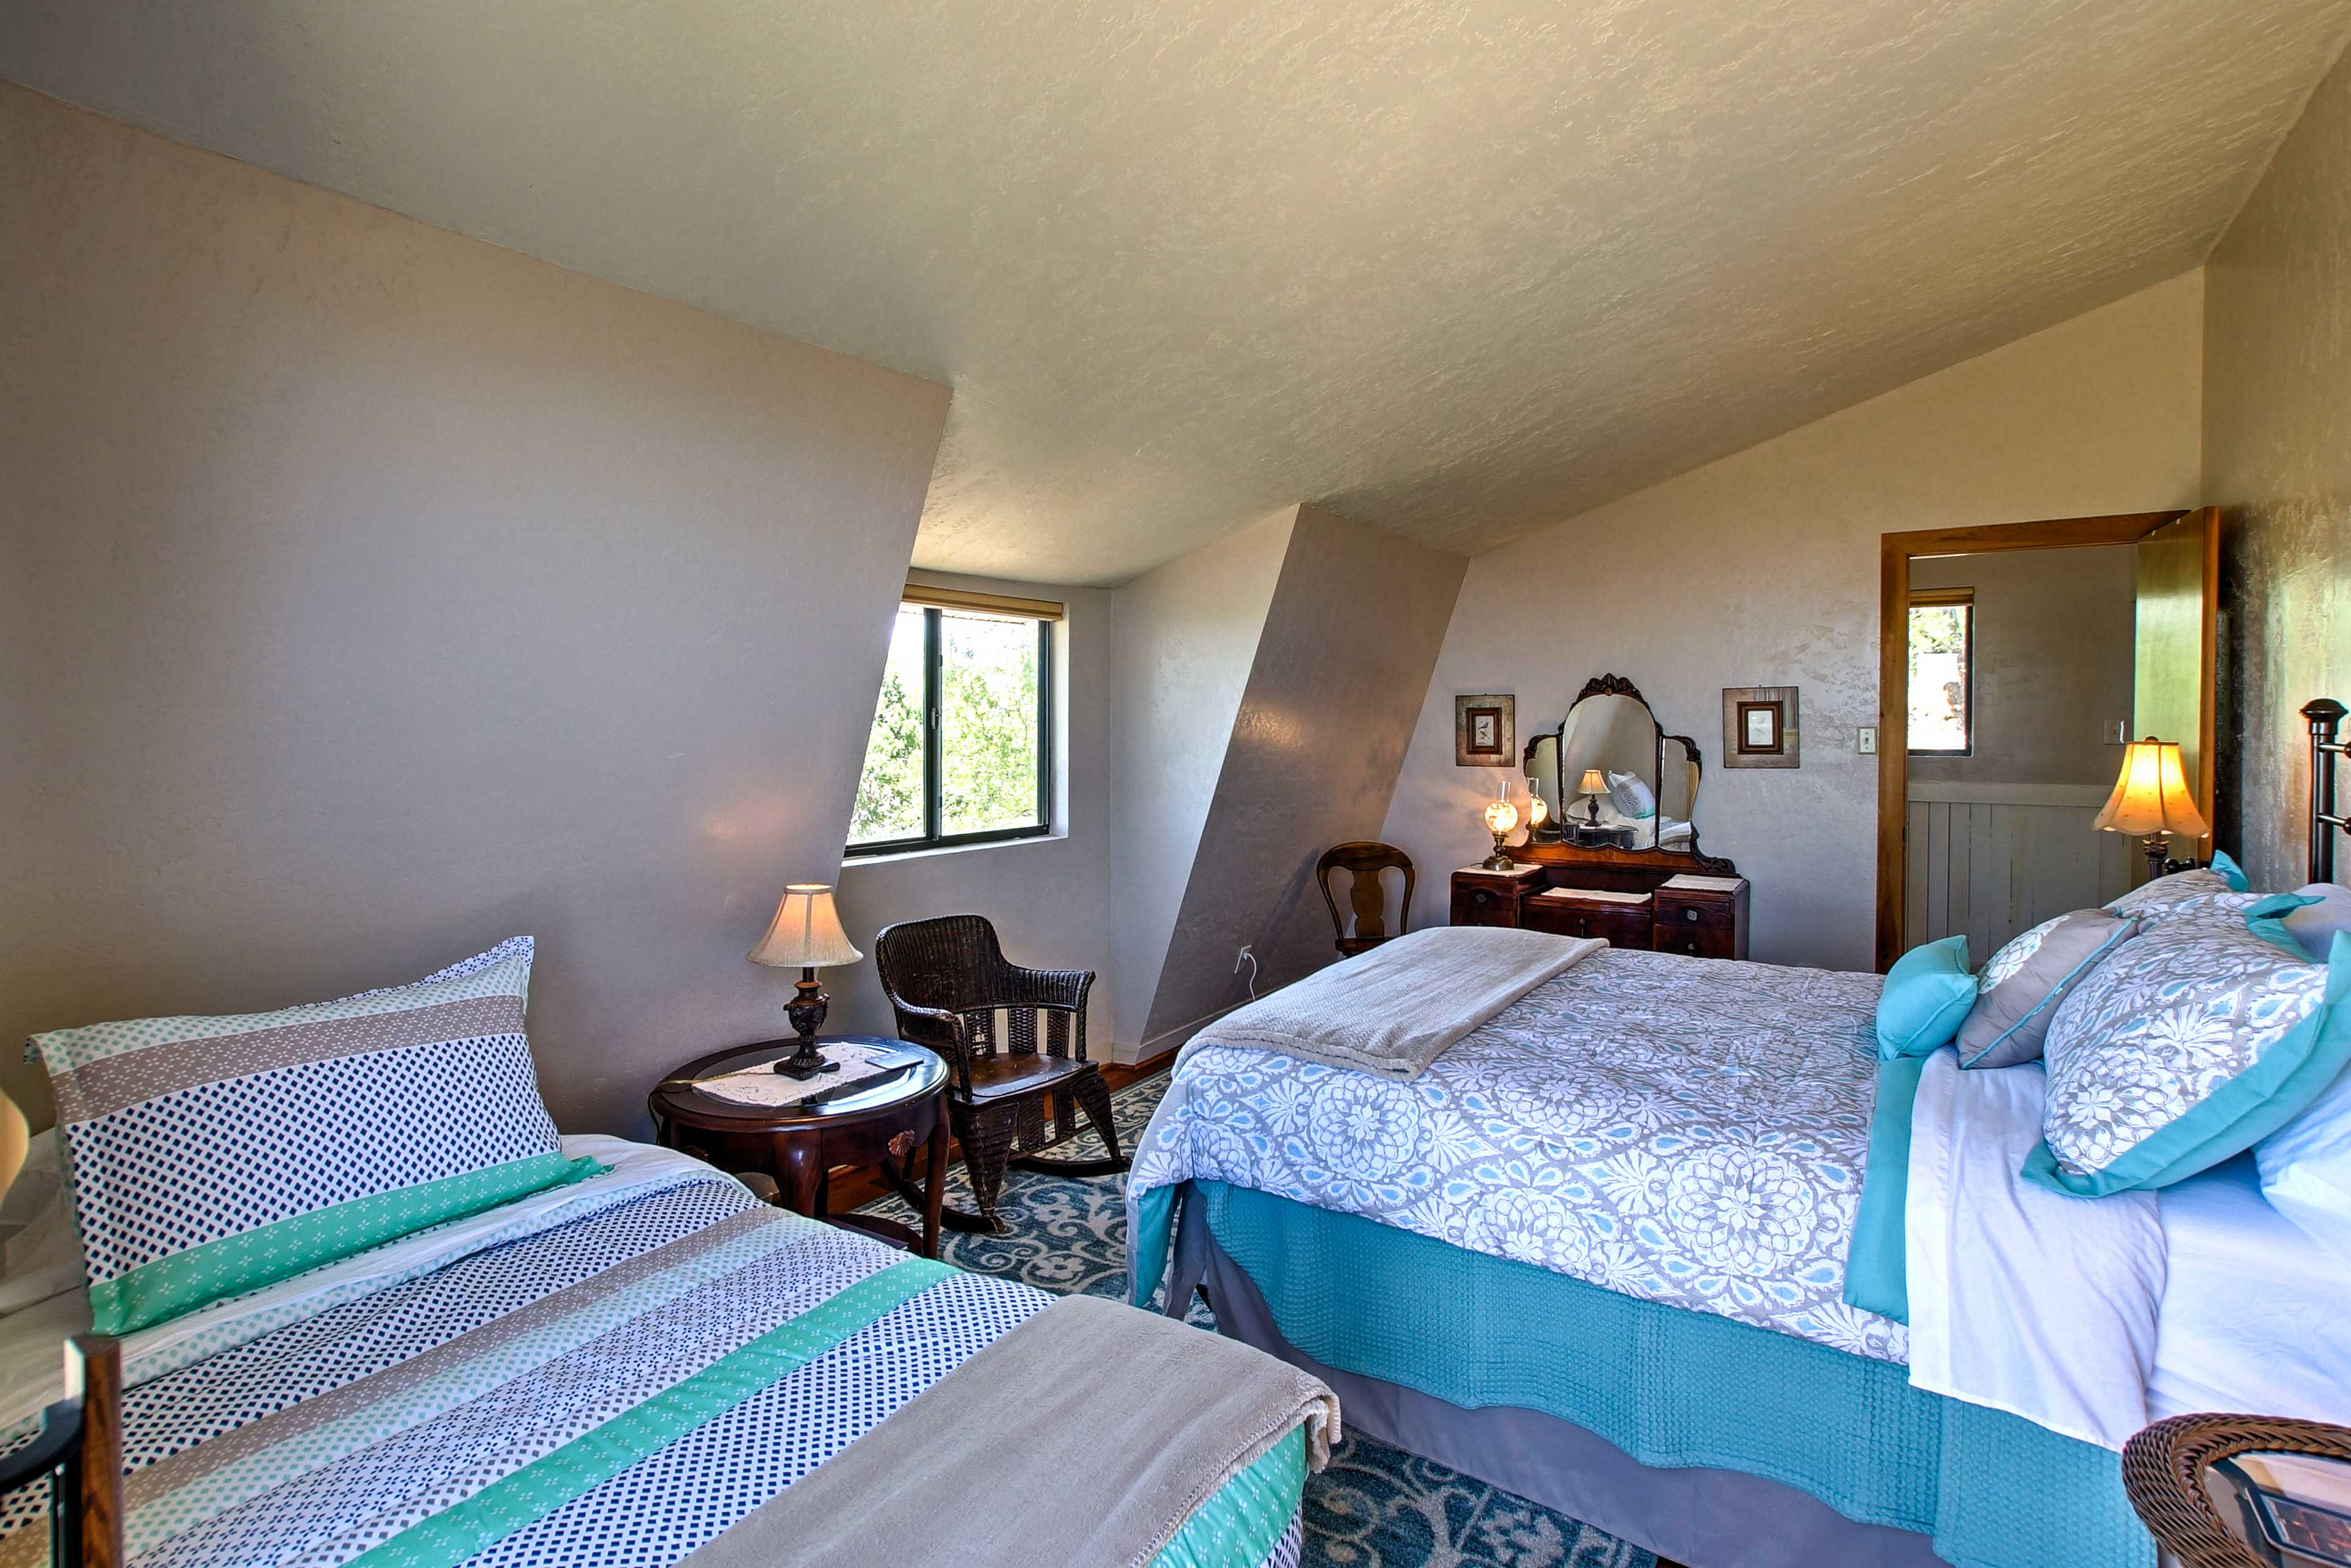 This room is perfect for small families sharing a room on holiday!